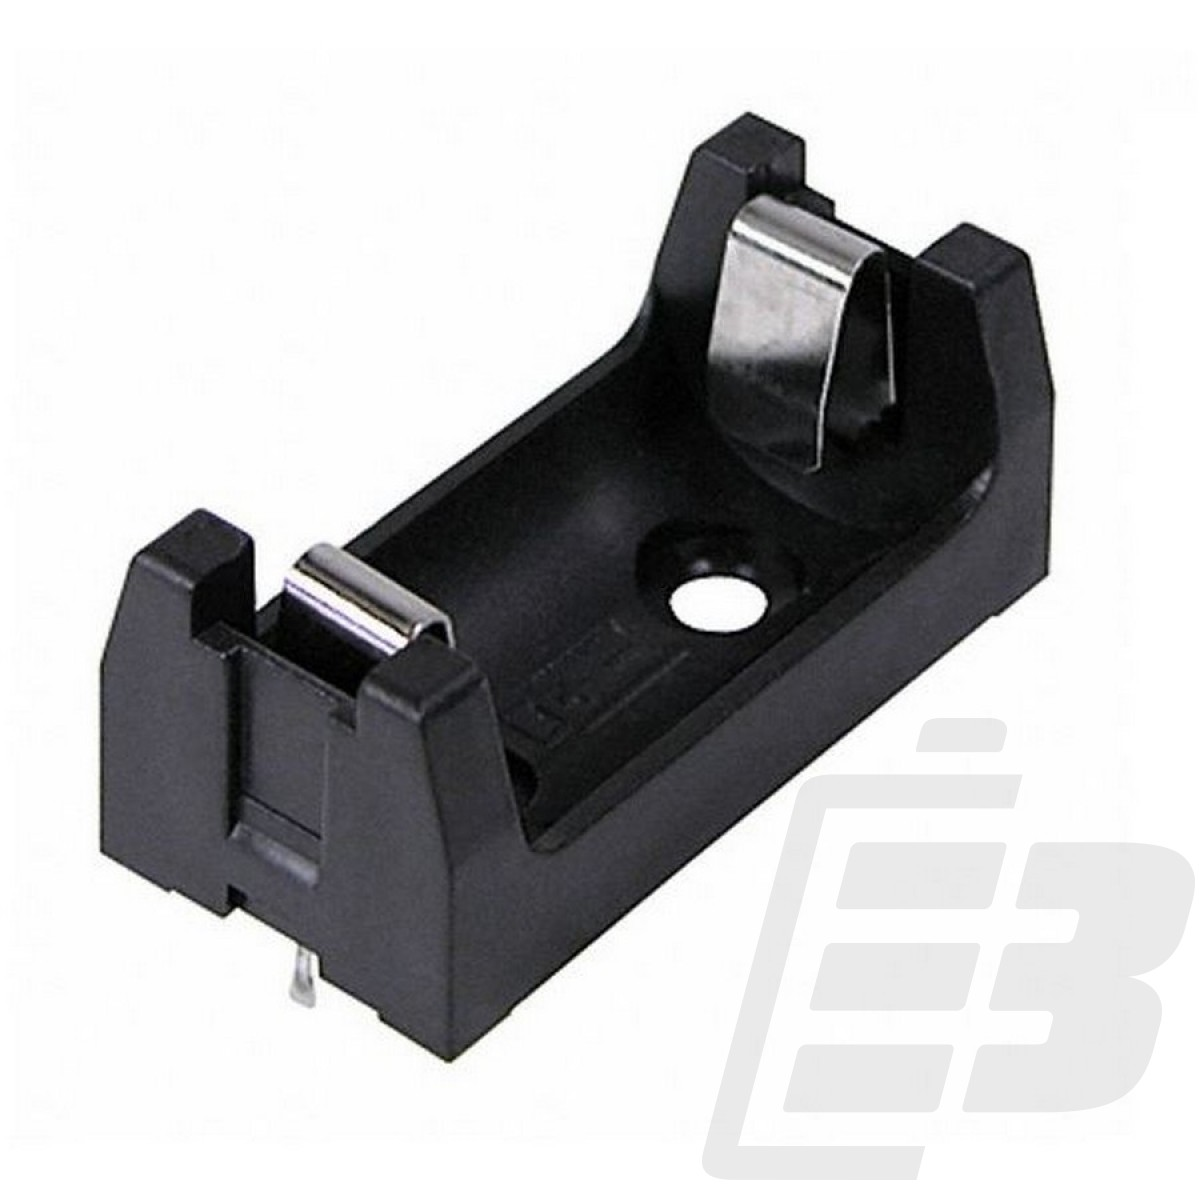 SBH-341-1A Pro Power Battery Holder4Xaa Enclosedwire Leads